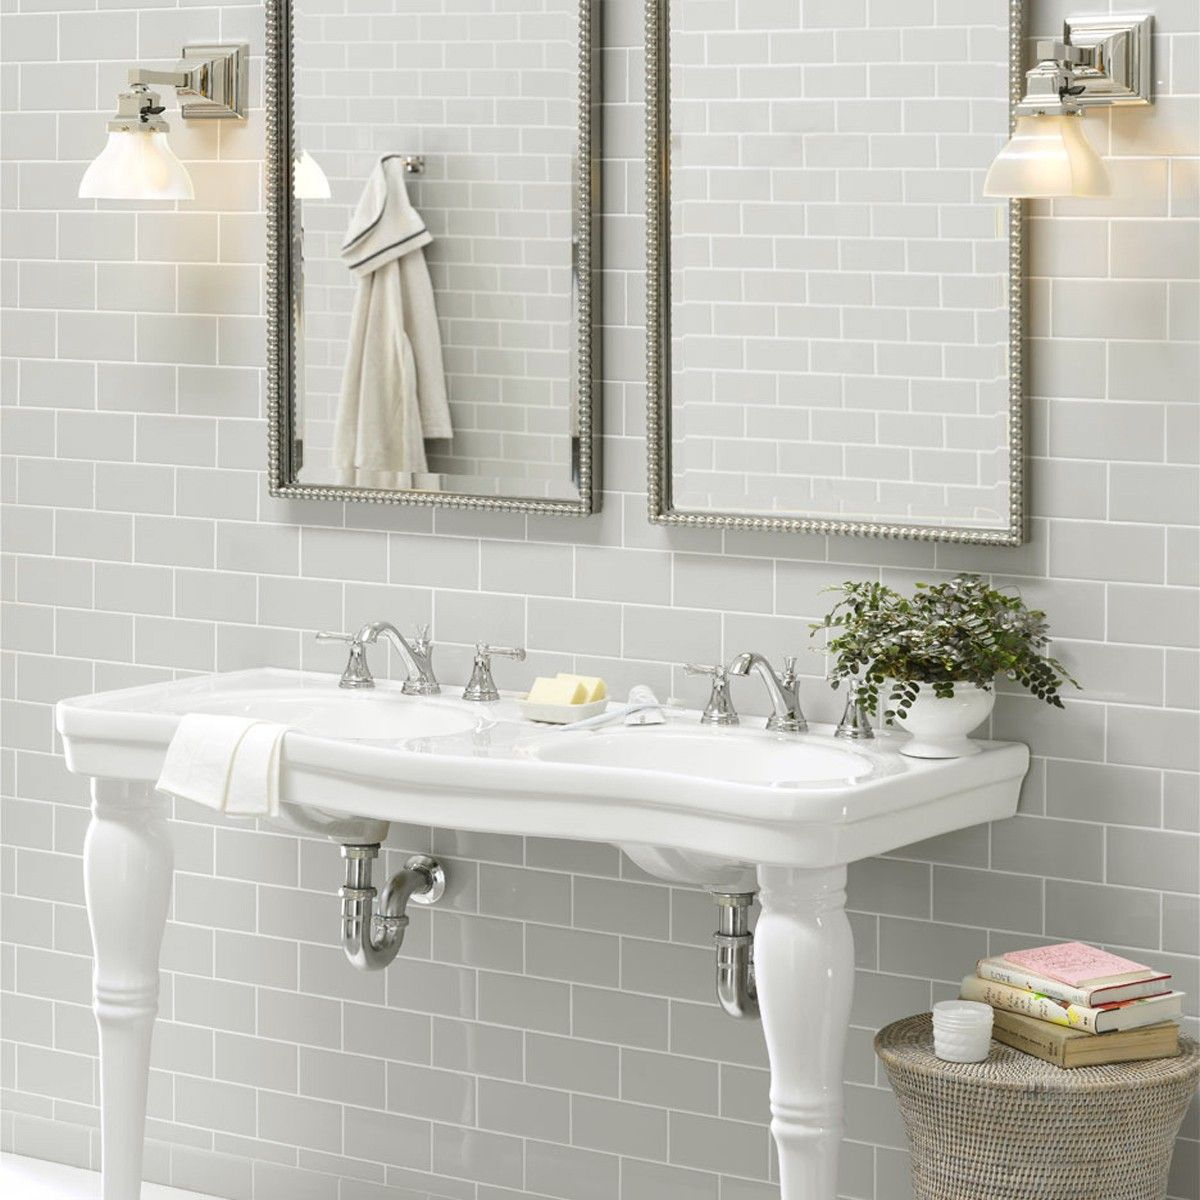 light grey wall tiles google search - Wall Tiles For Bathroom Designs